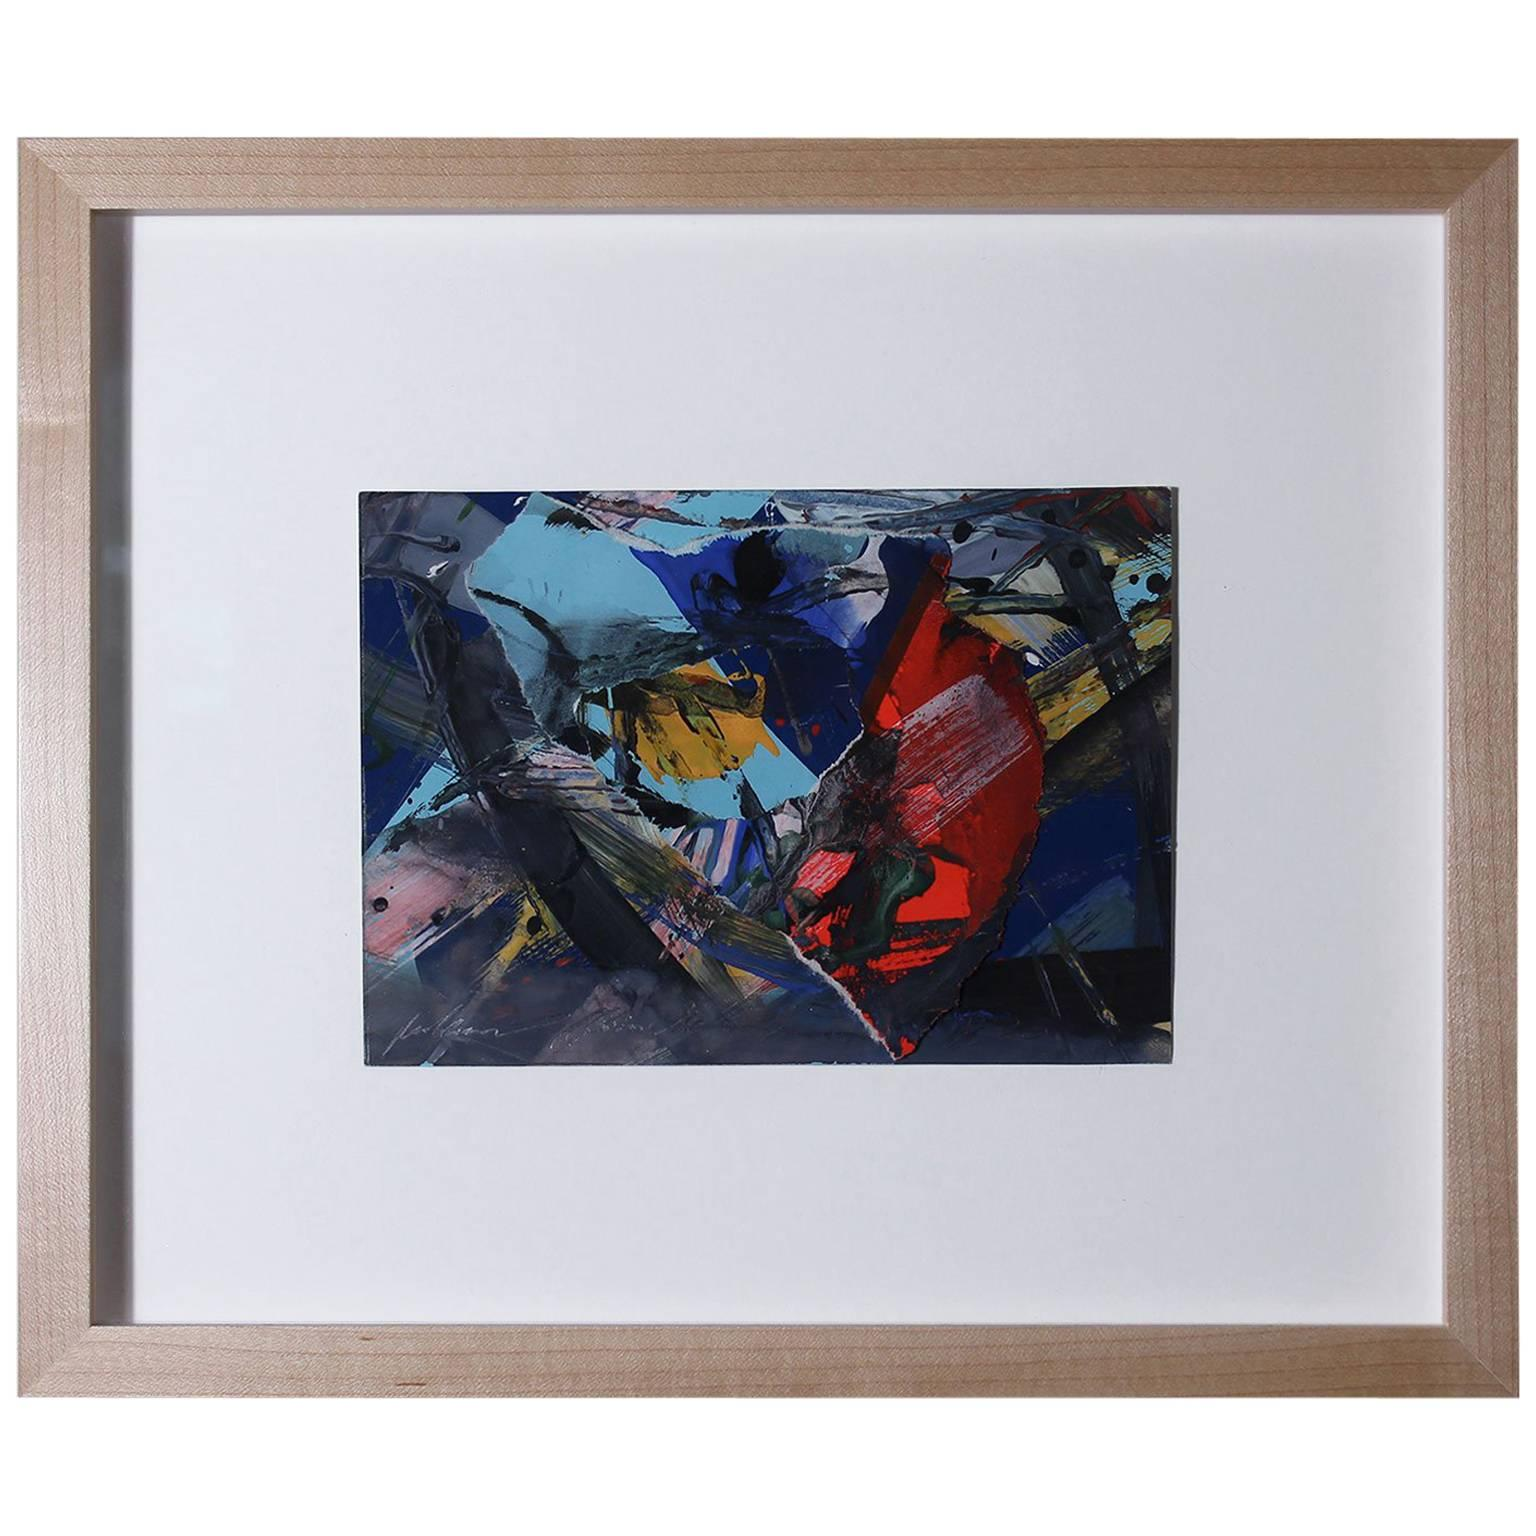 1980 Richard Allen Morris Abstract Painting Collage